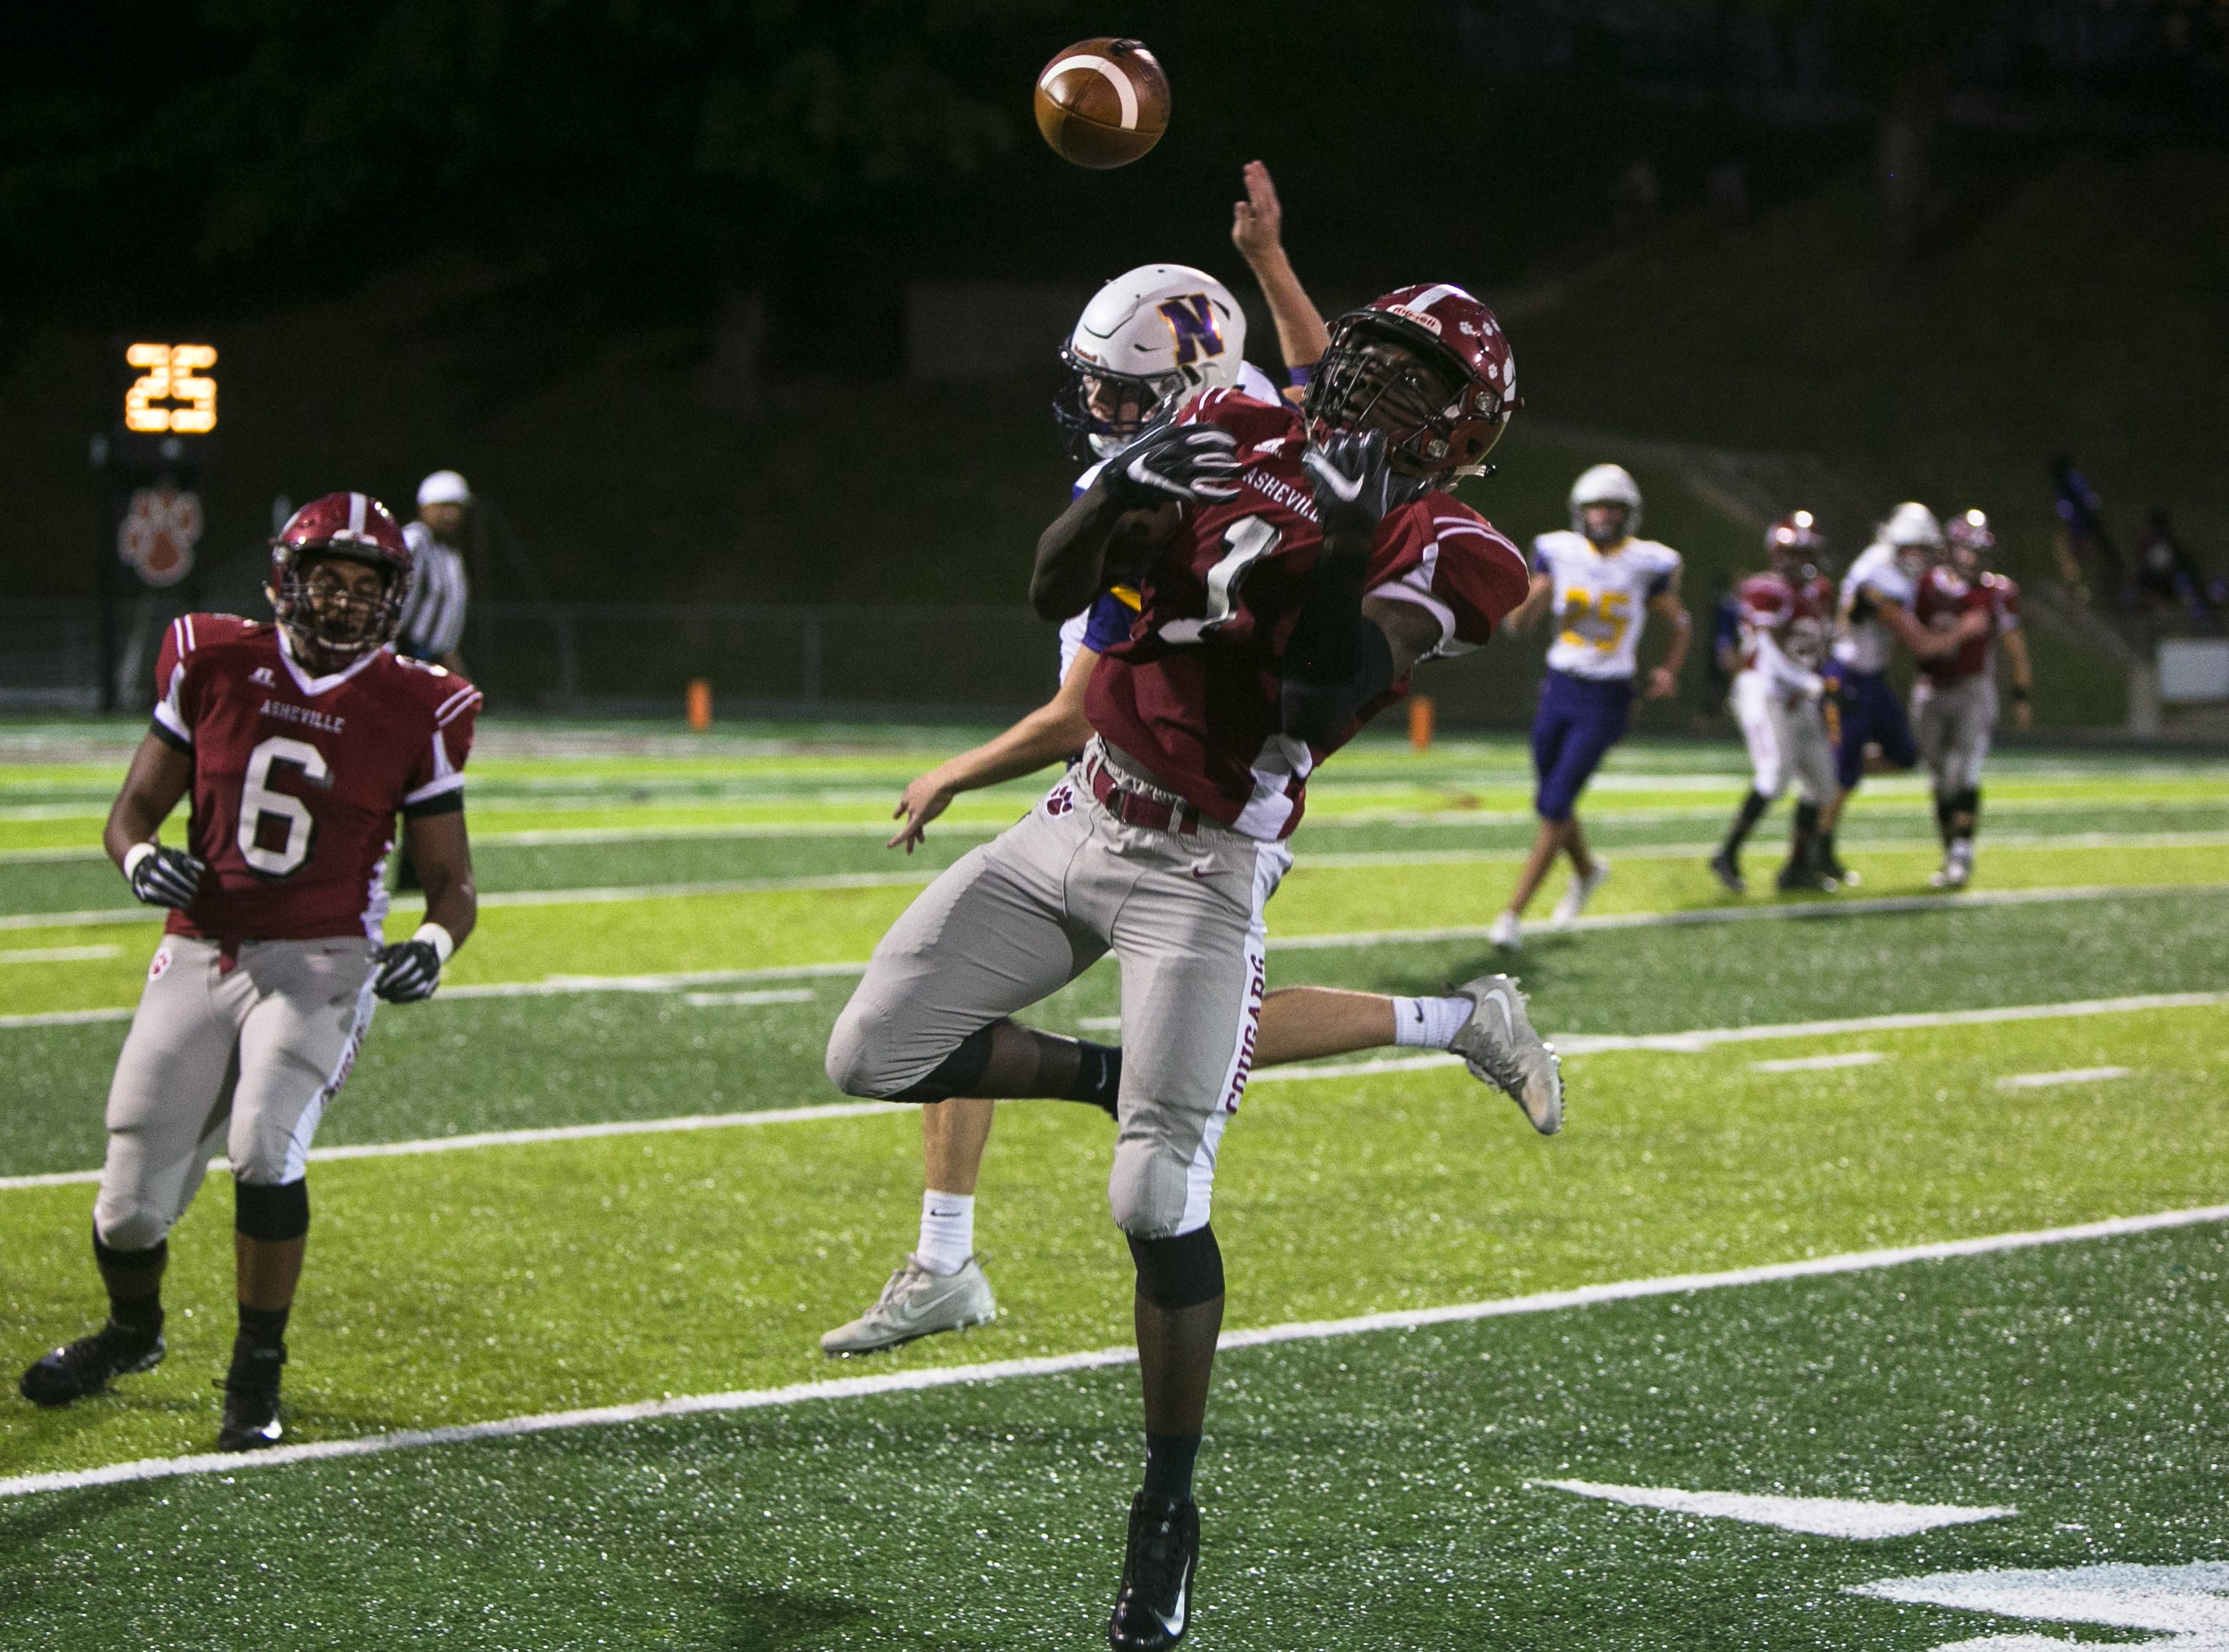 Asheville High beat out North Henderson on Friday, September 28th, 2018 at Asheville, with a final score of 50-14.